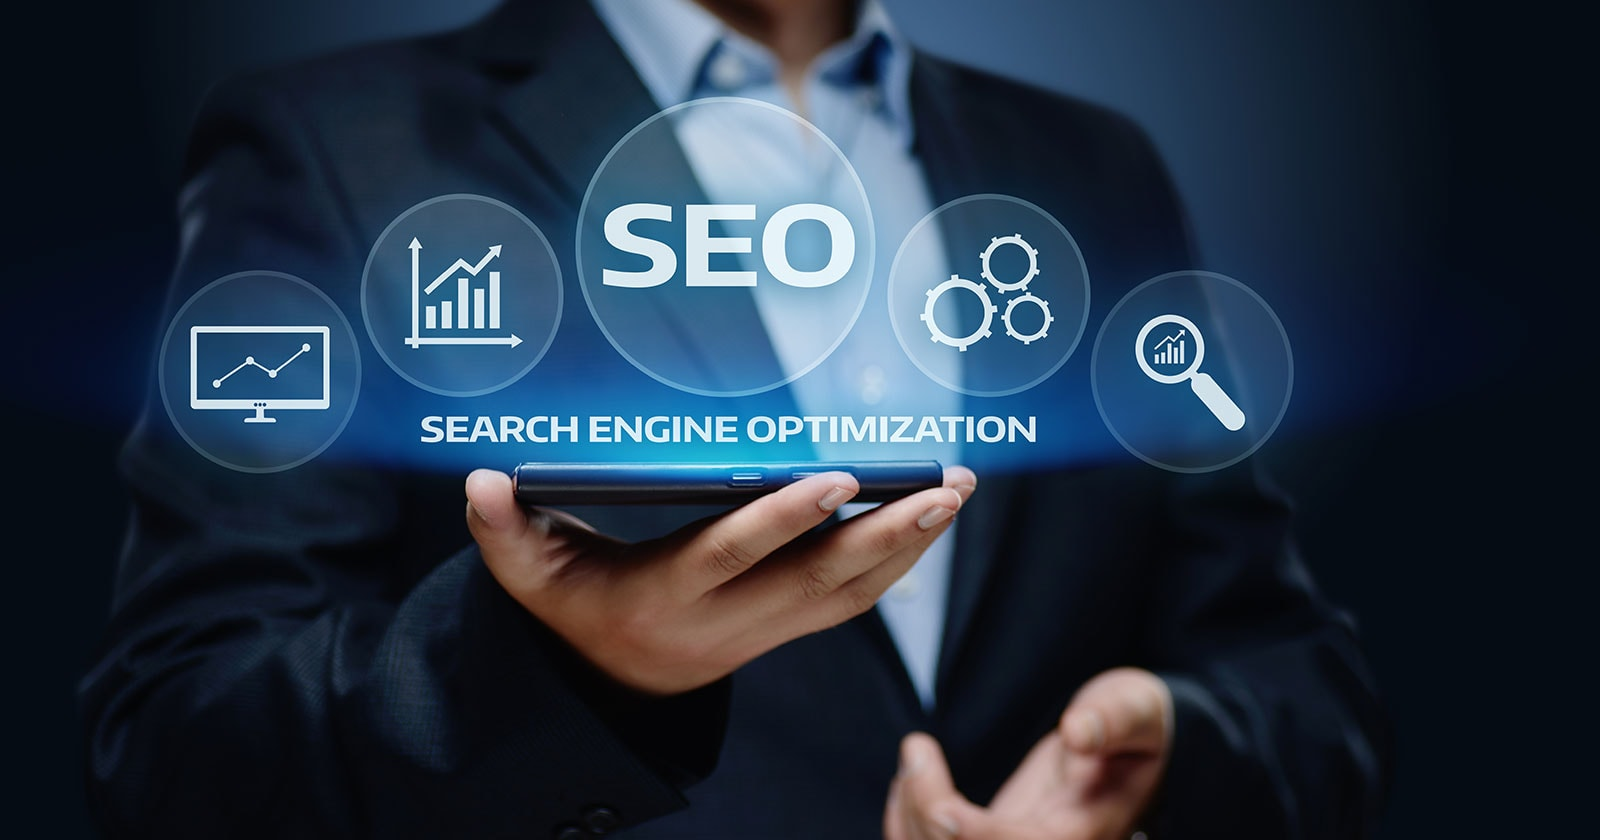 I will create optimized web content for you